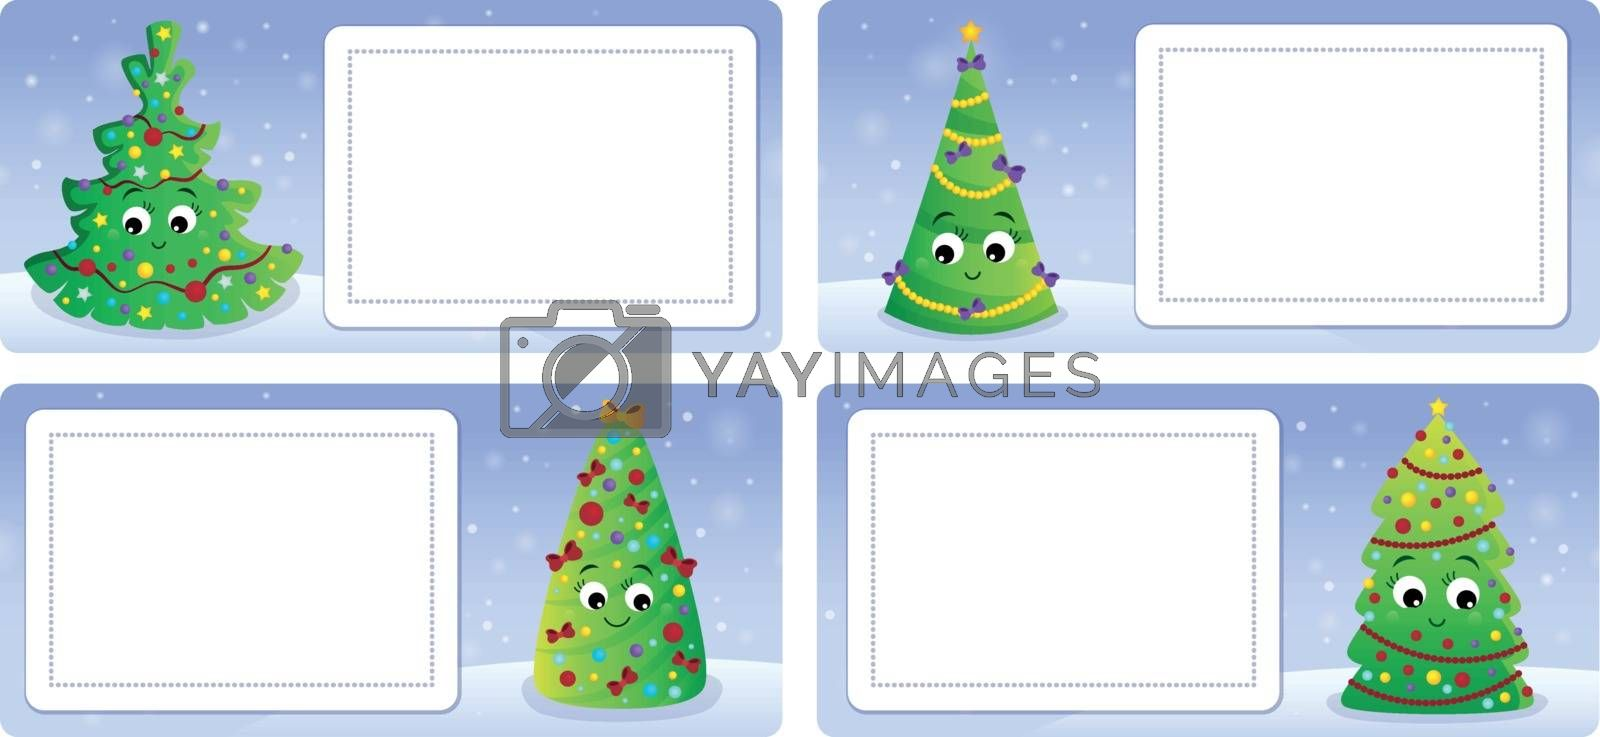 Stylized Christmas theme cards 2 - eps10 vector illustration.